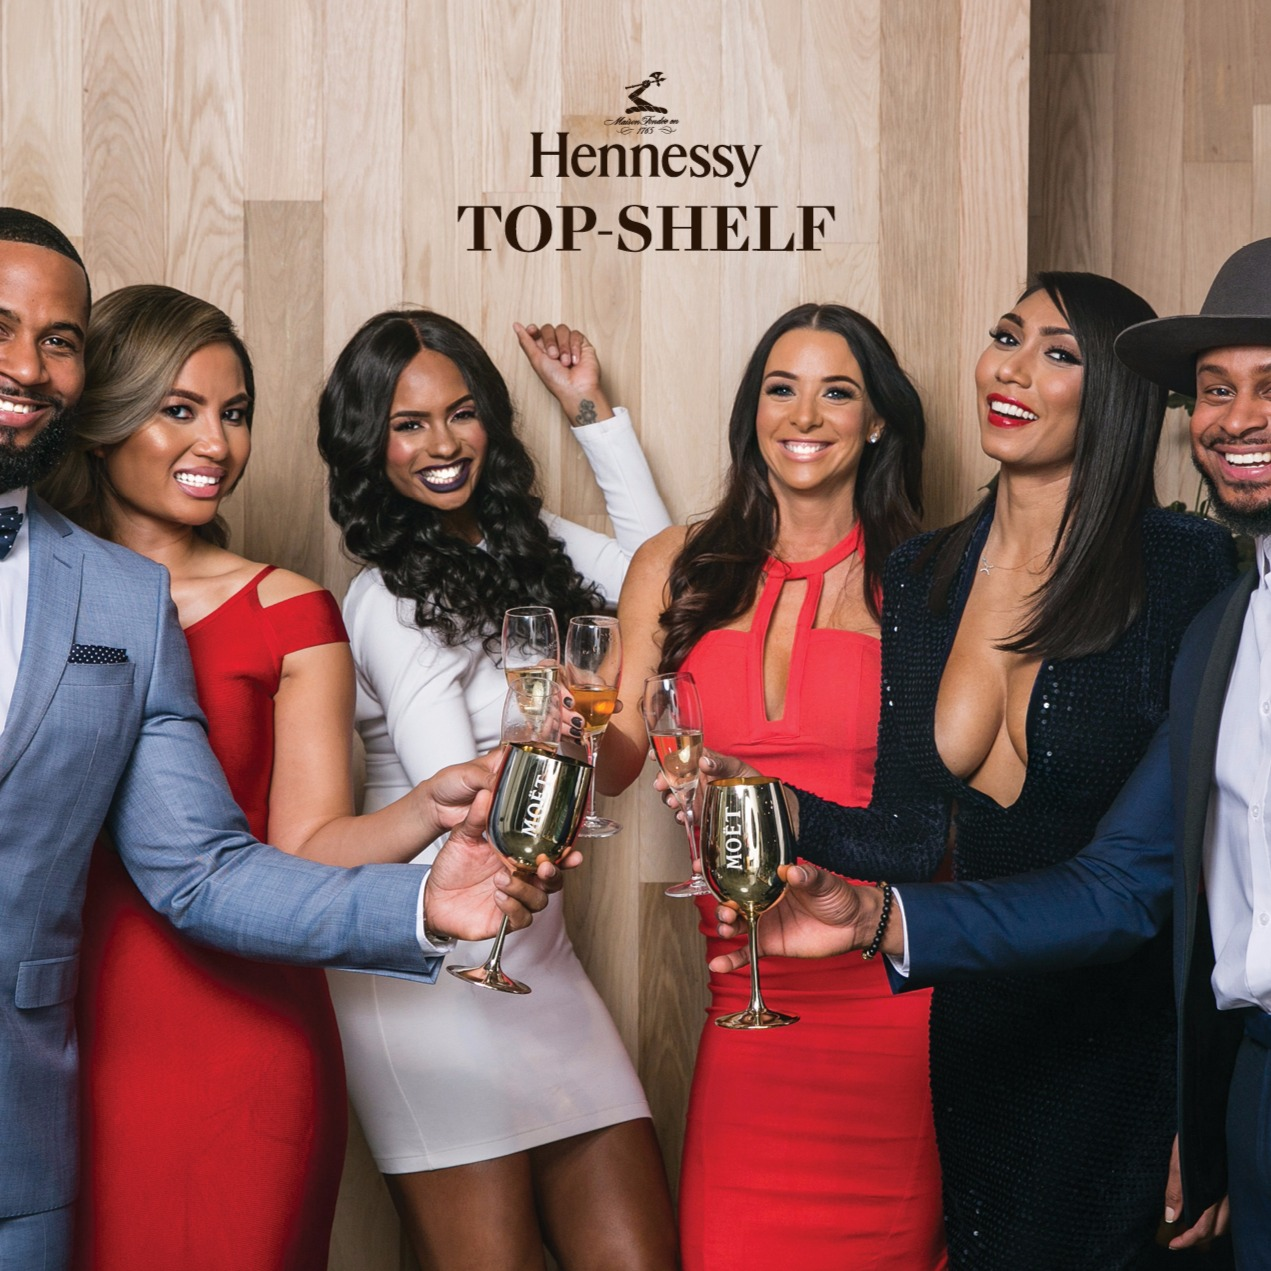 Hennessy Presents TOP-SHELF